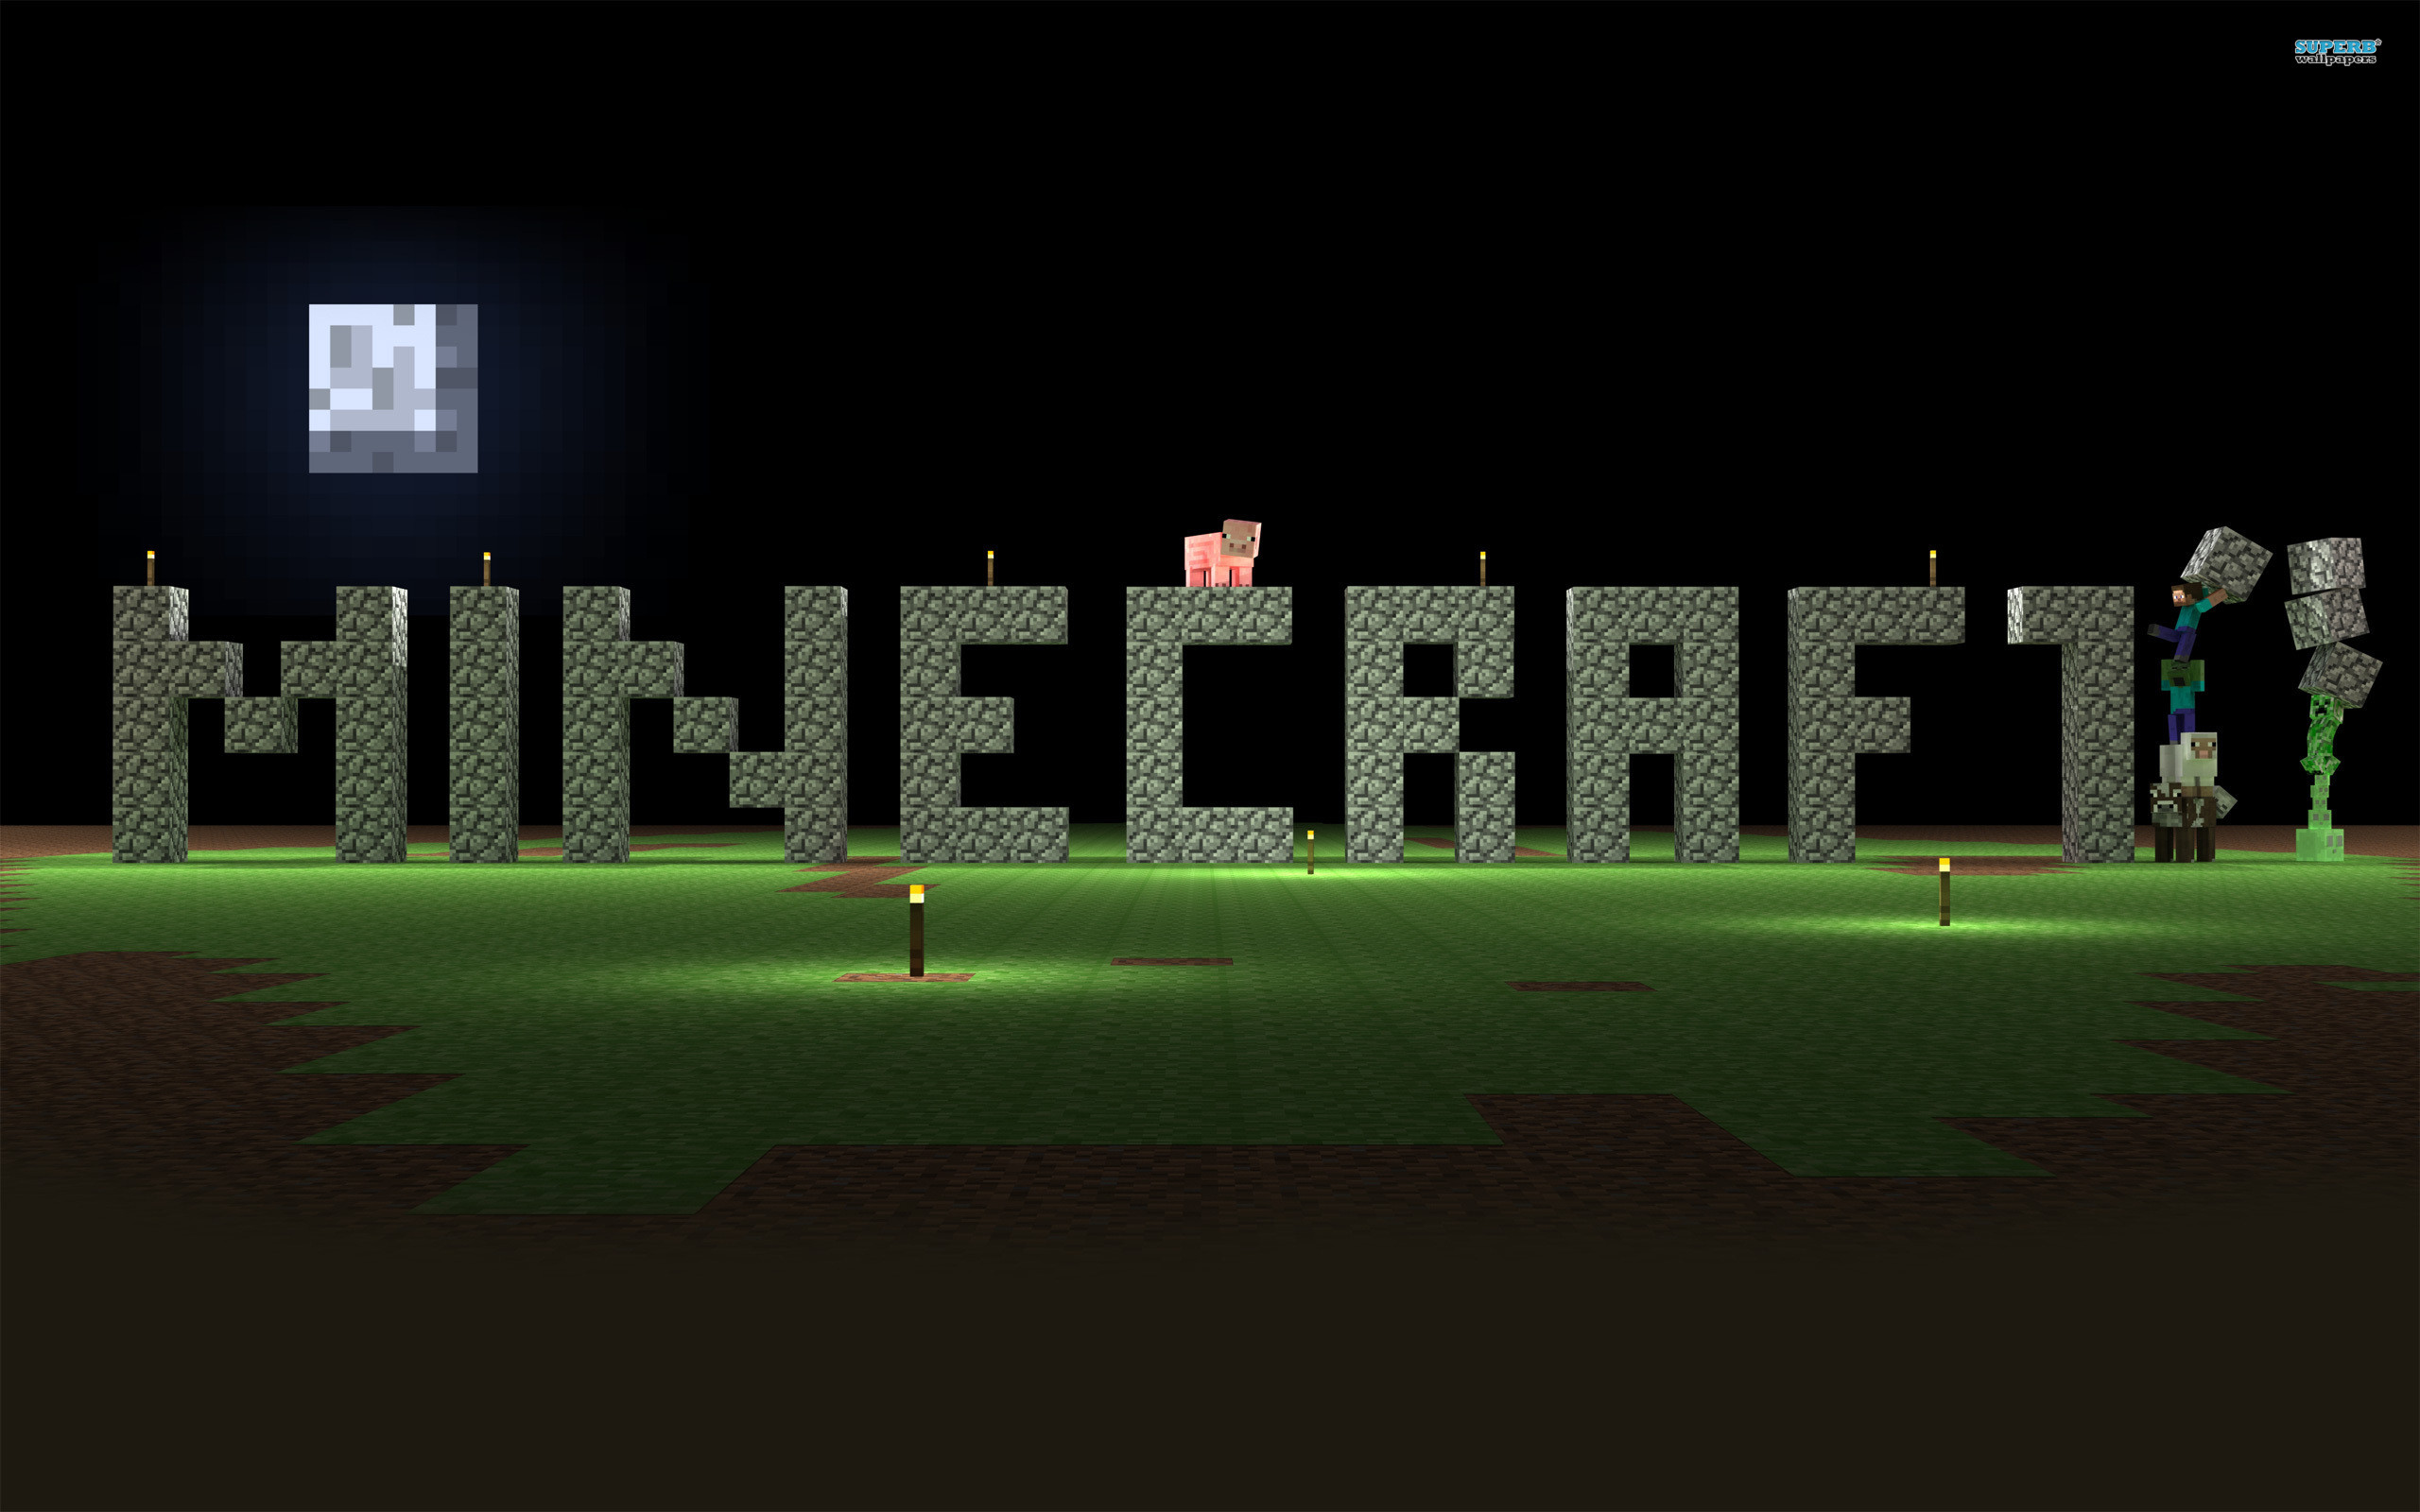 Epic Minecraft Backgrounds 72 images 2560x1600